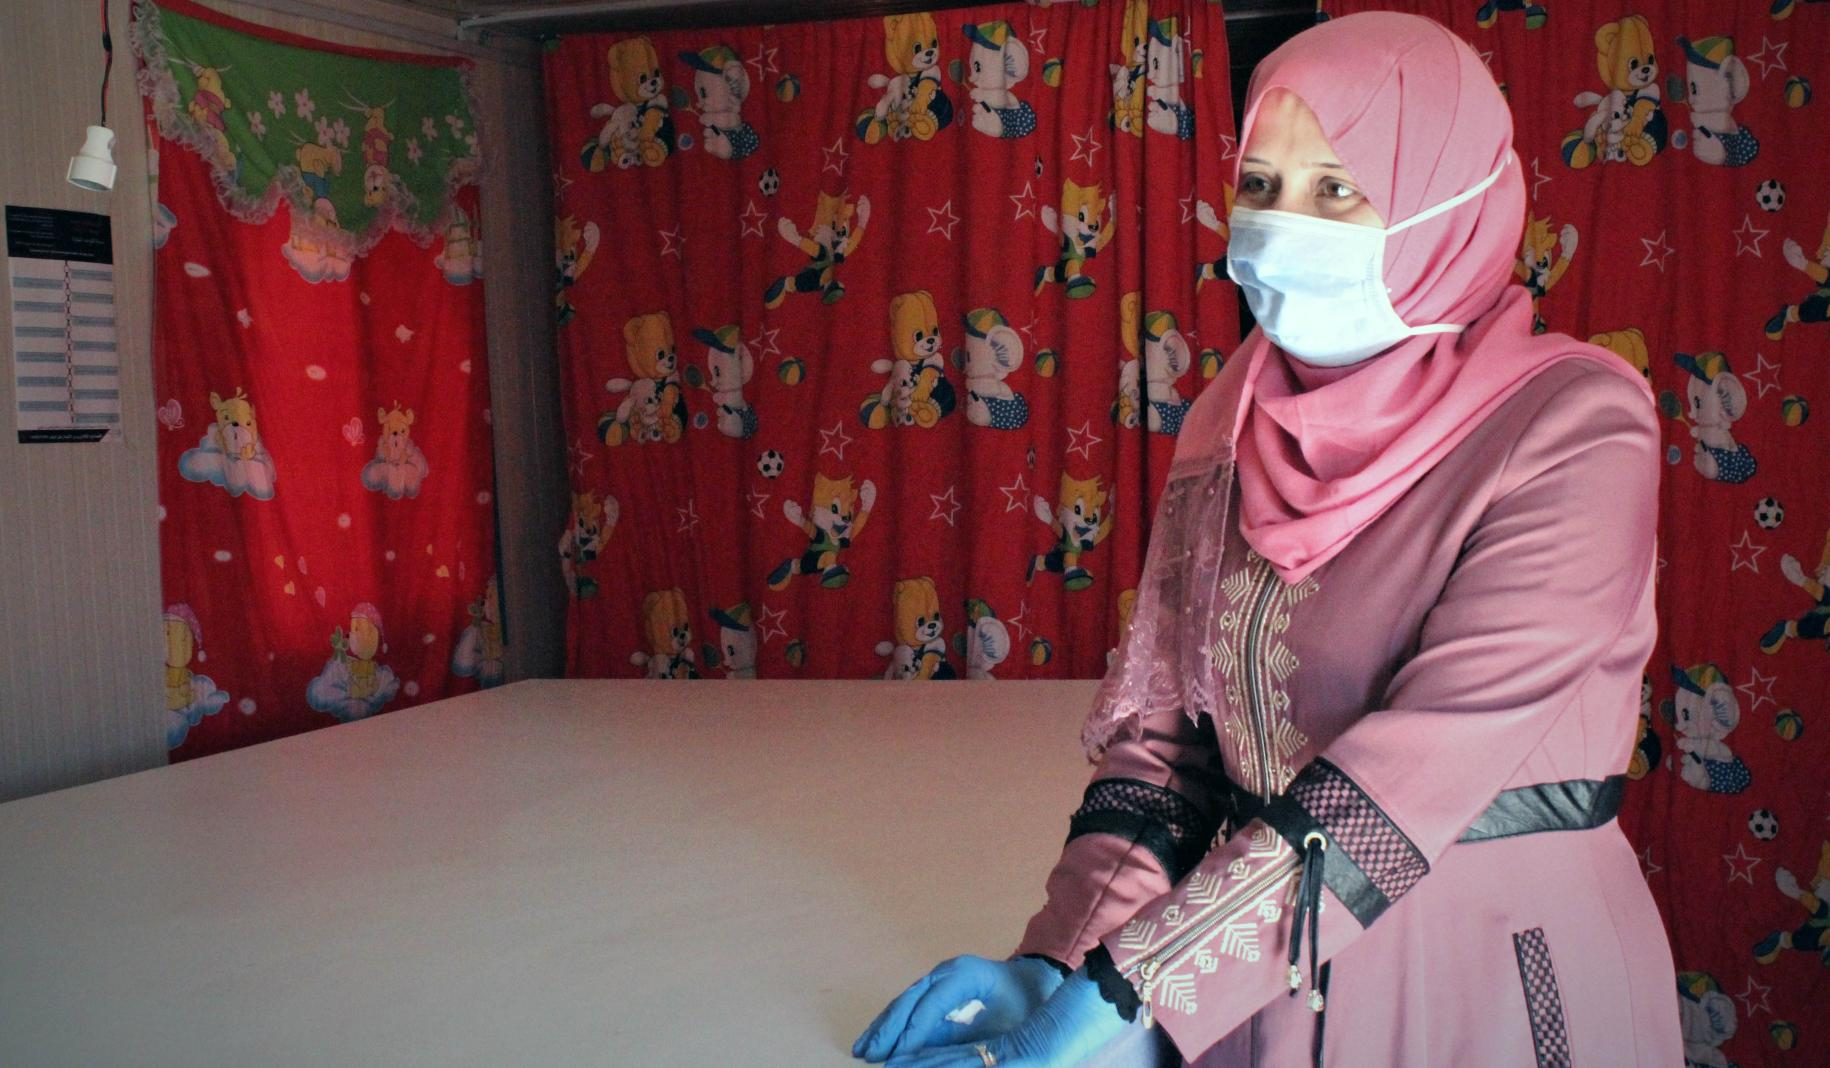 Haifa, 33, wears a face mask and gloves as she stands by a table in a room with red curtains.